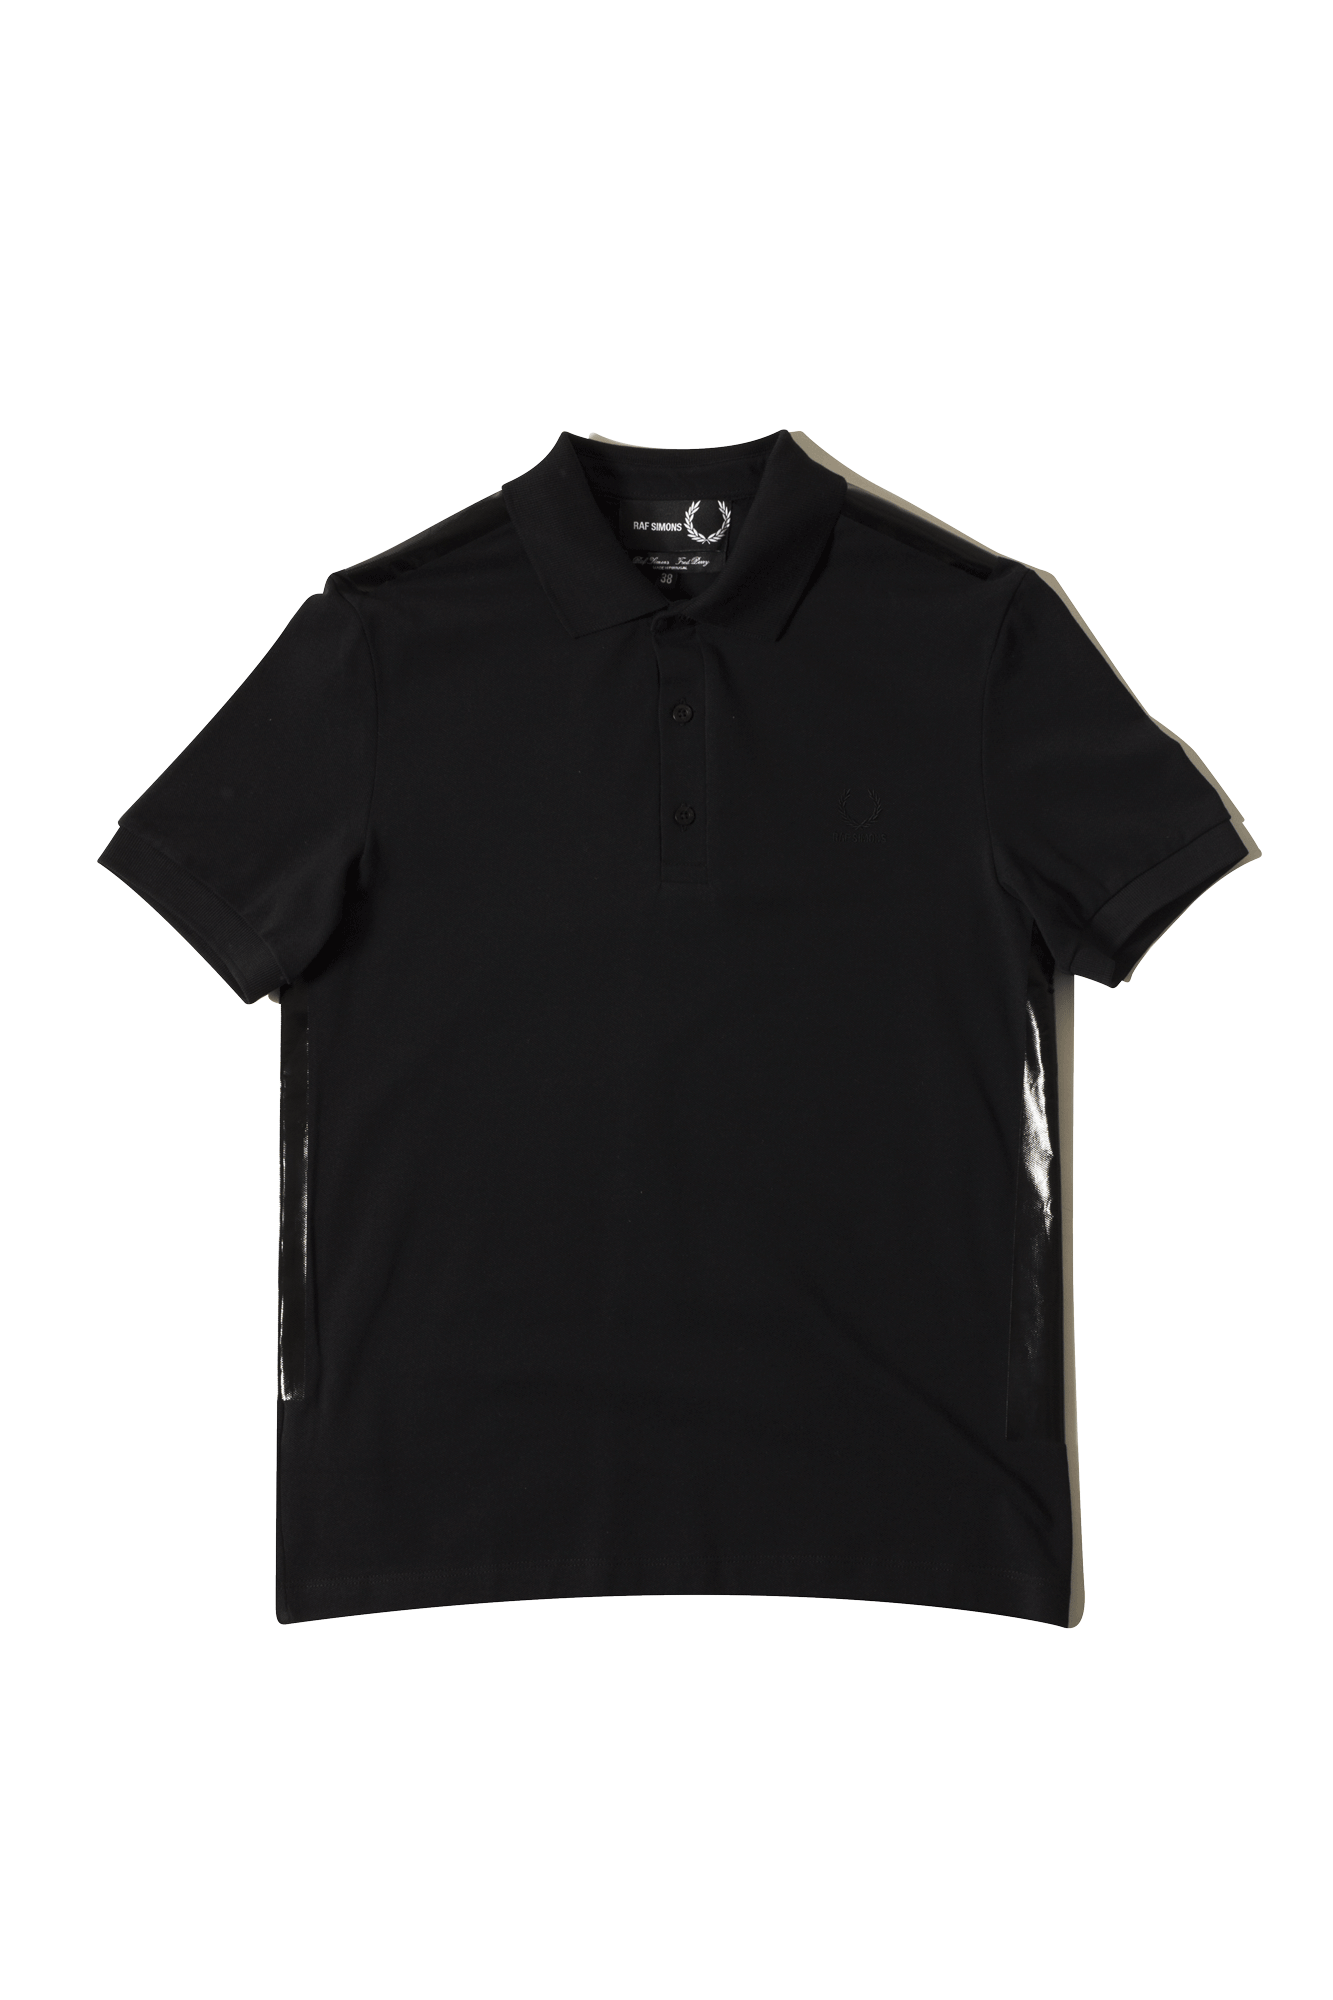 Fred Perry X Raf Simons Shirts Raf Simons Tape Detail Pk Shirt Black SM3082#000#102#40 - One Block Down